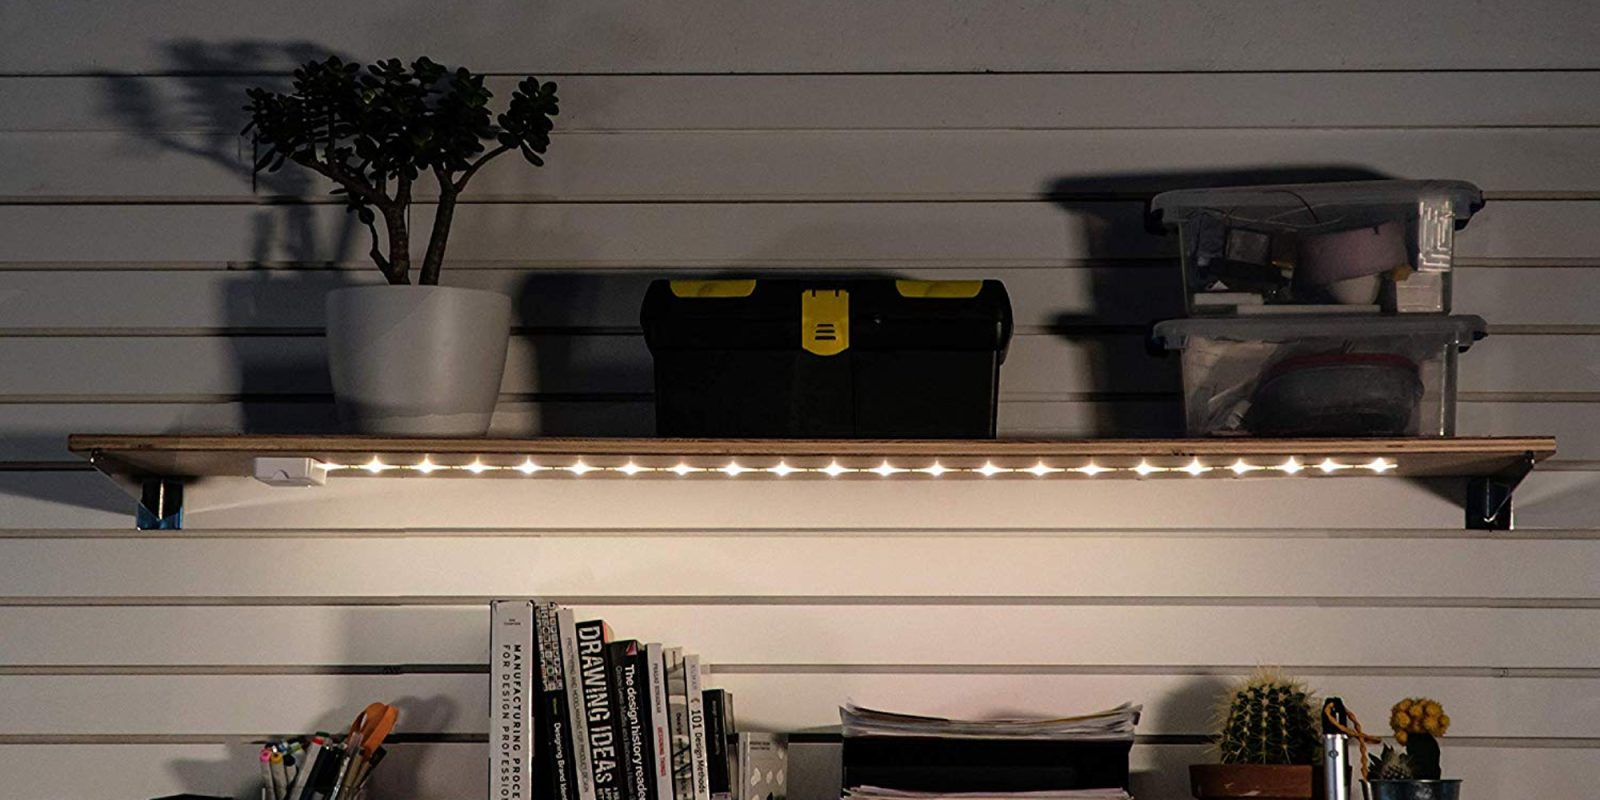 Add A Highly-rated Led Light Strip To Your Desk, Shelves